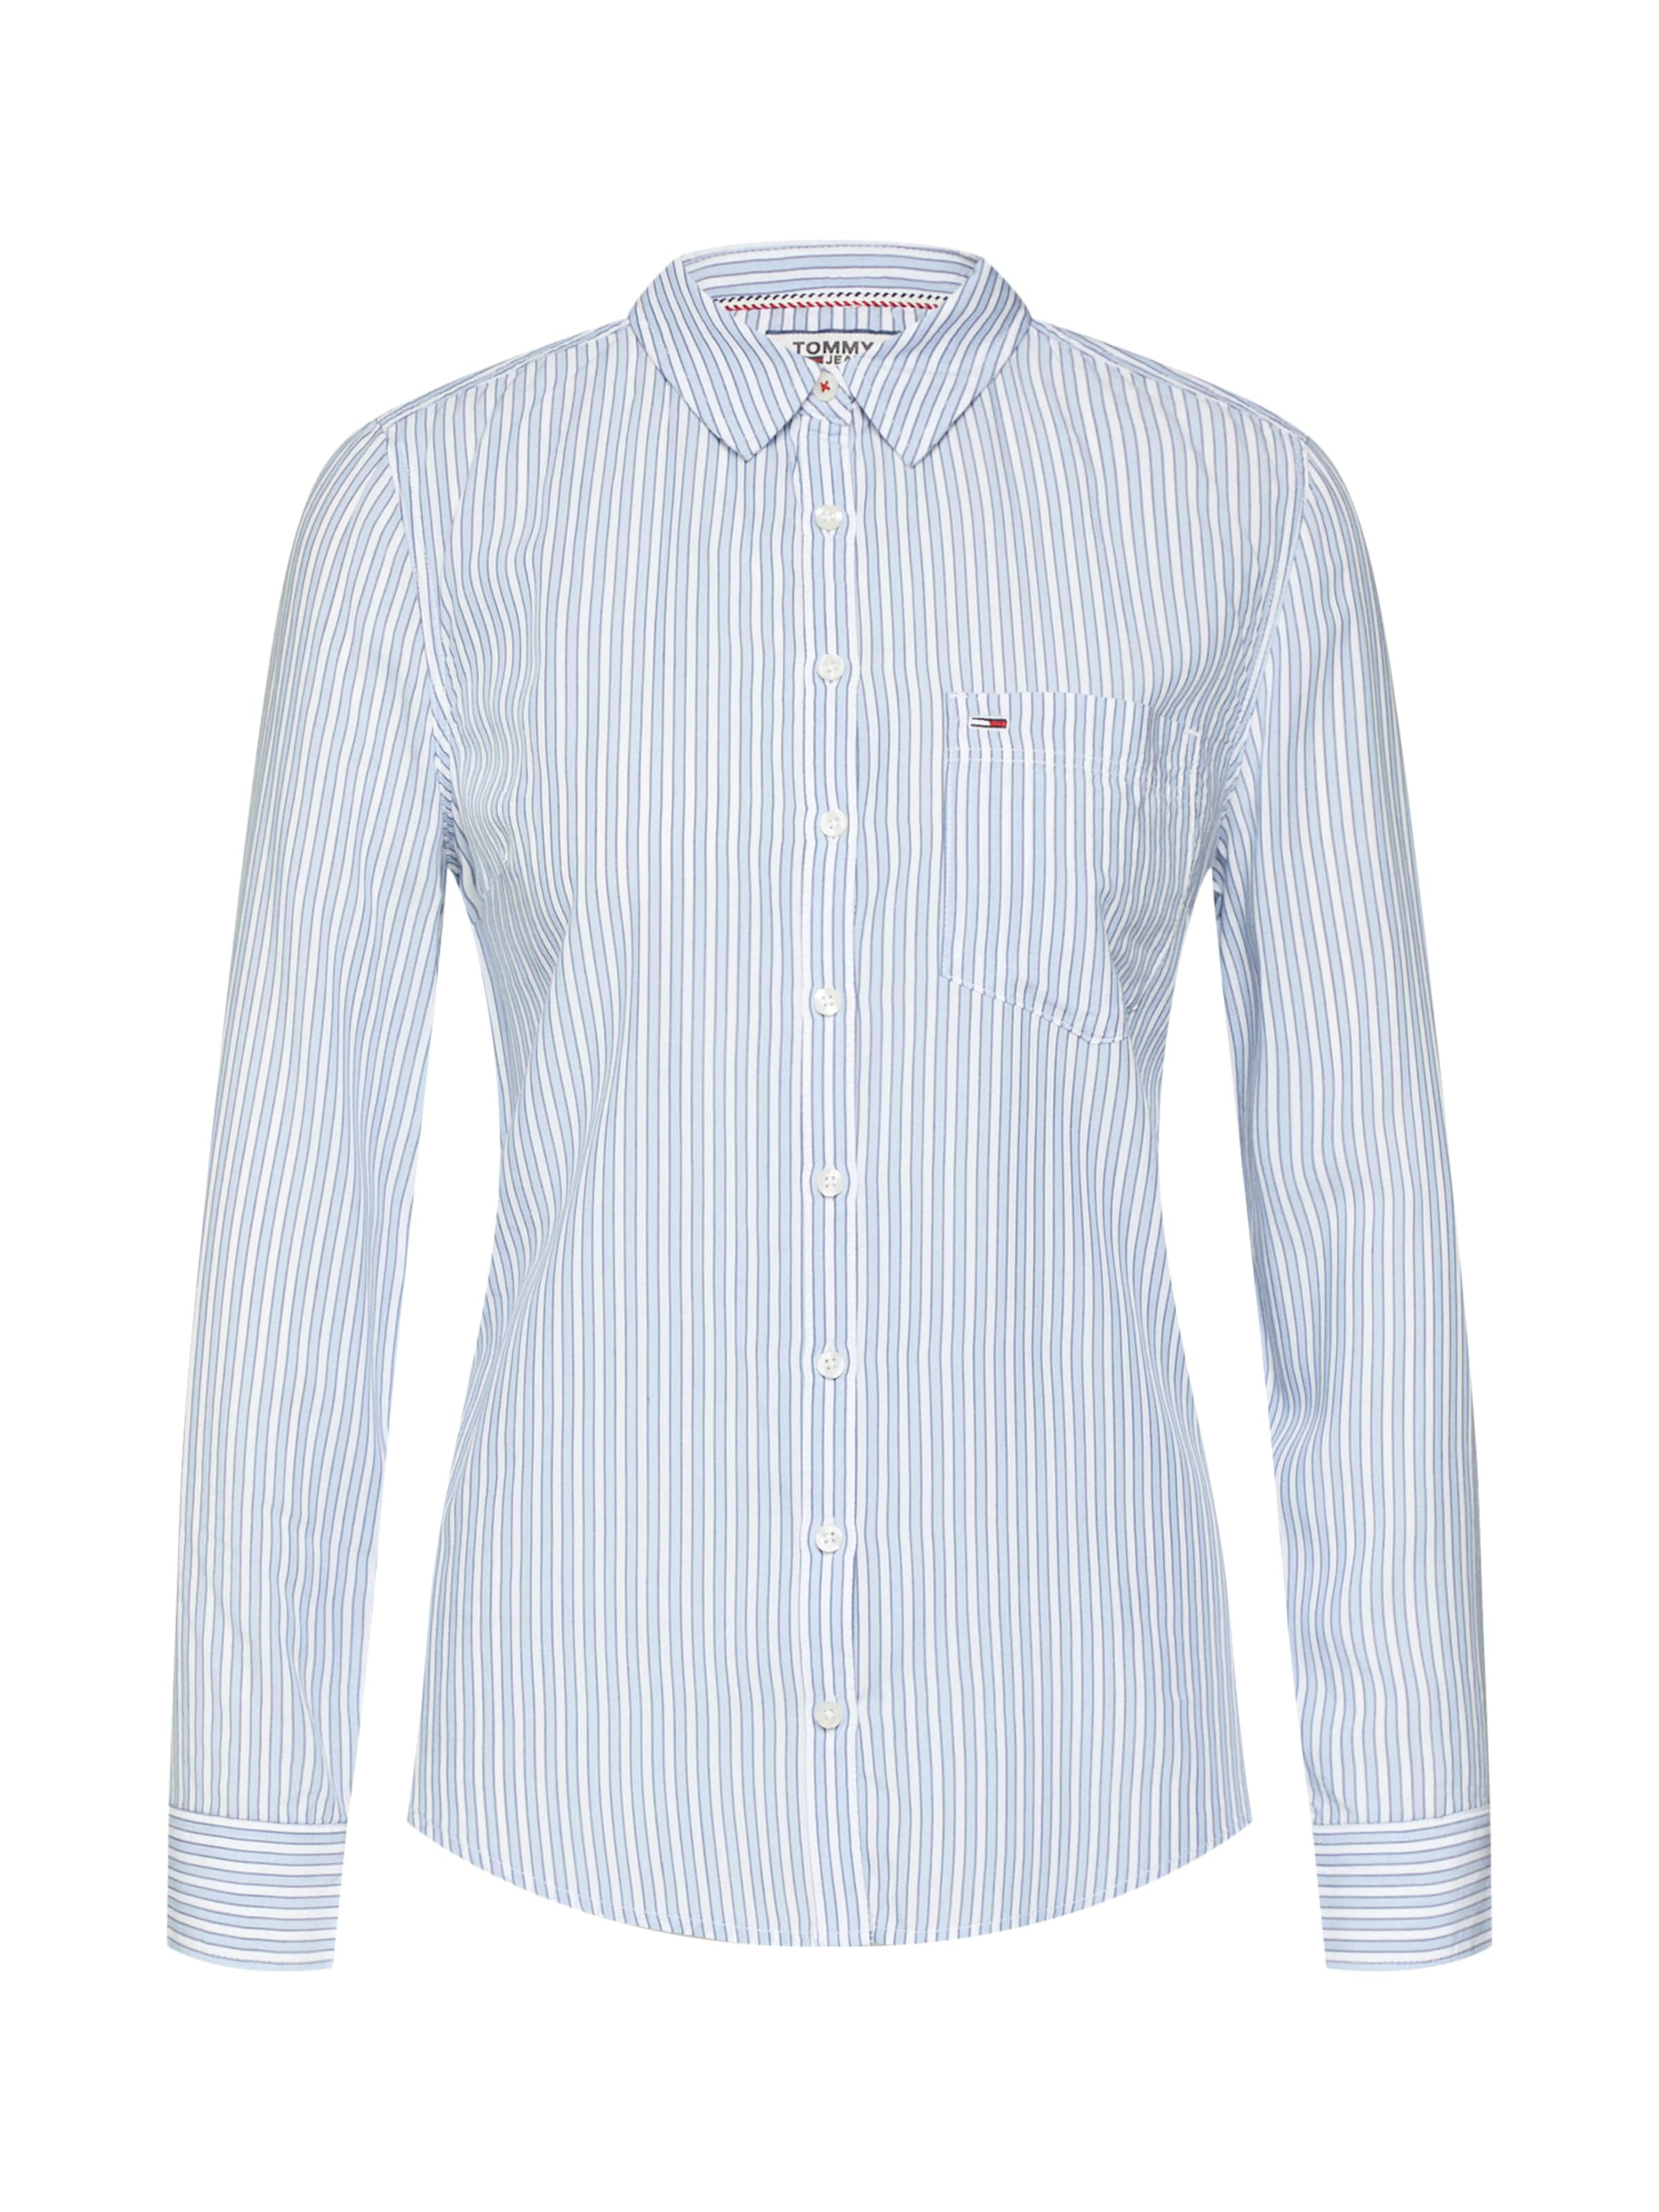 Bluse Tommy Tommy In Bluse Jeans Tommy In HellblauWeiß Jeans HellblauWeiß Jeans PXZiku